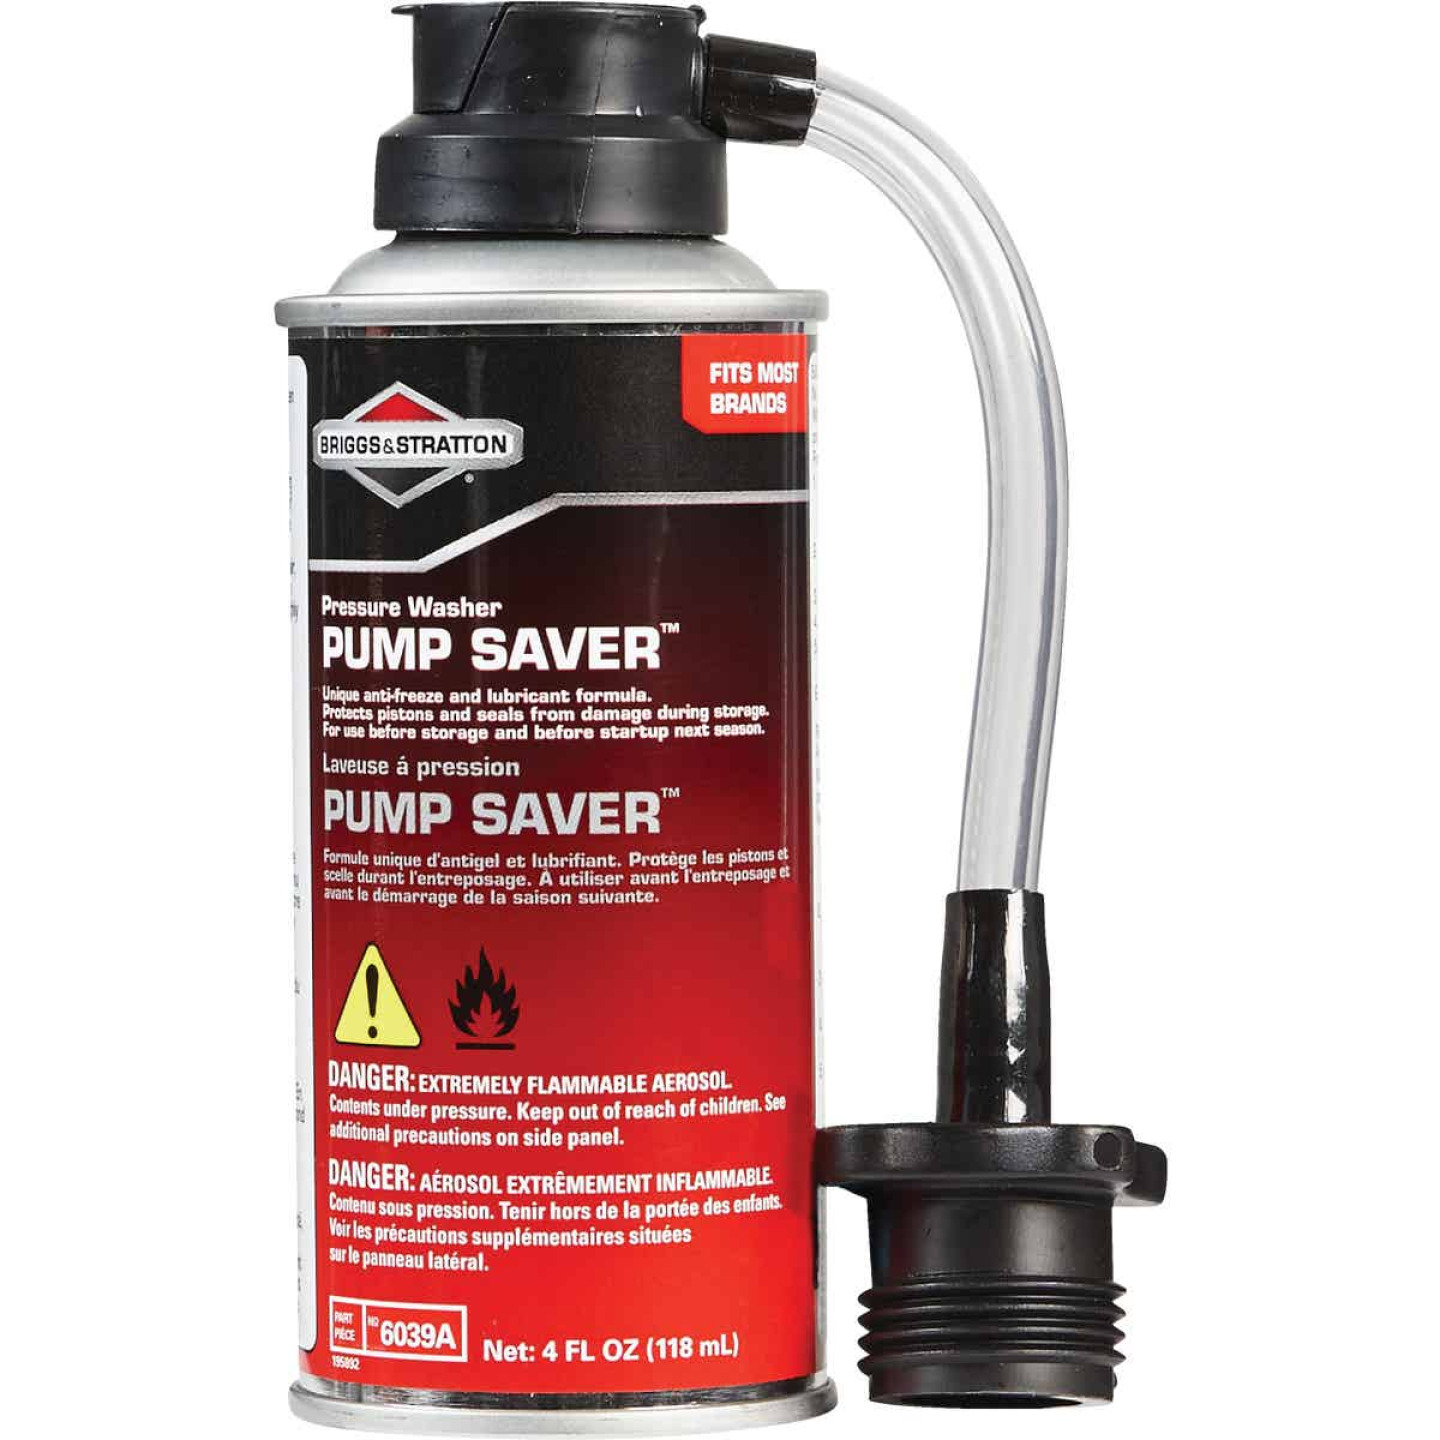 Briggs & Stratton Pump Saver 4 Oz. For Pressure Washer Image 1